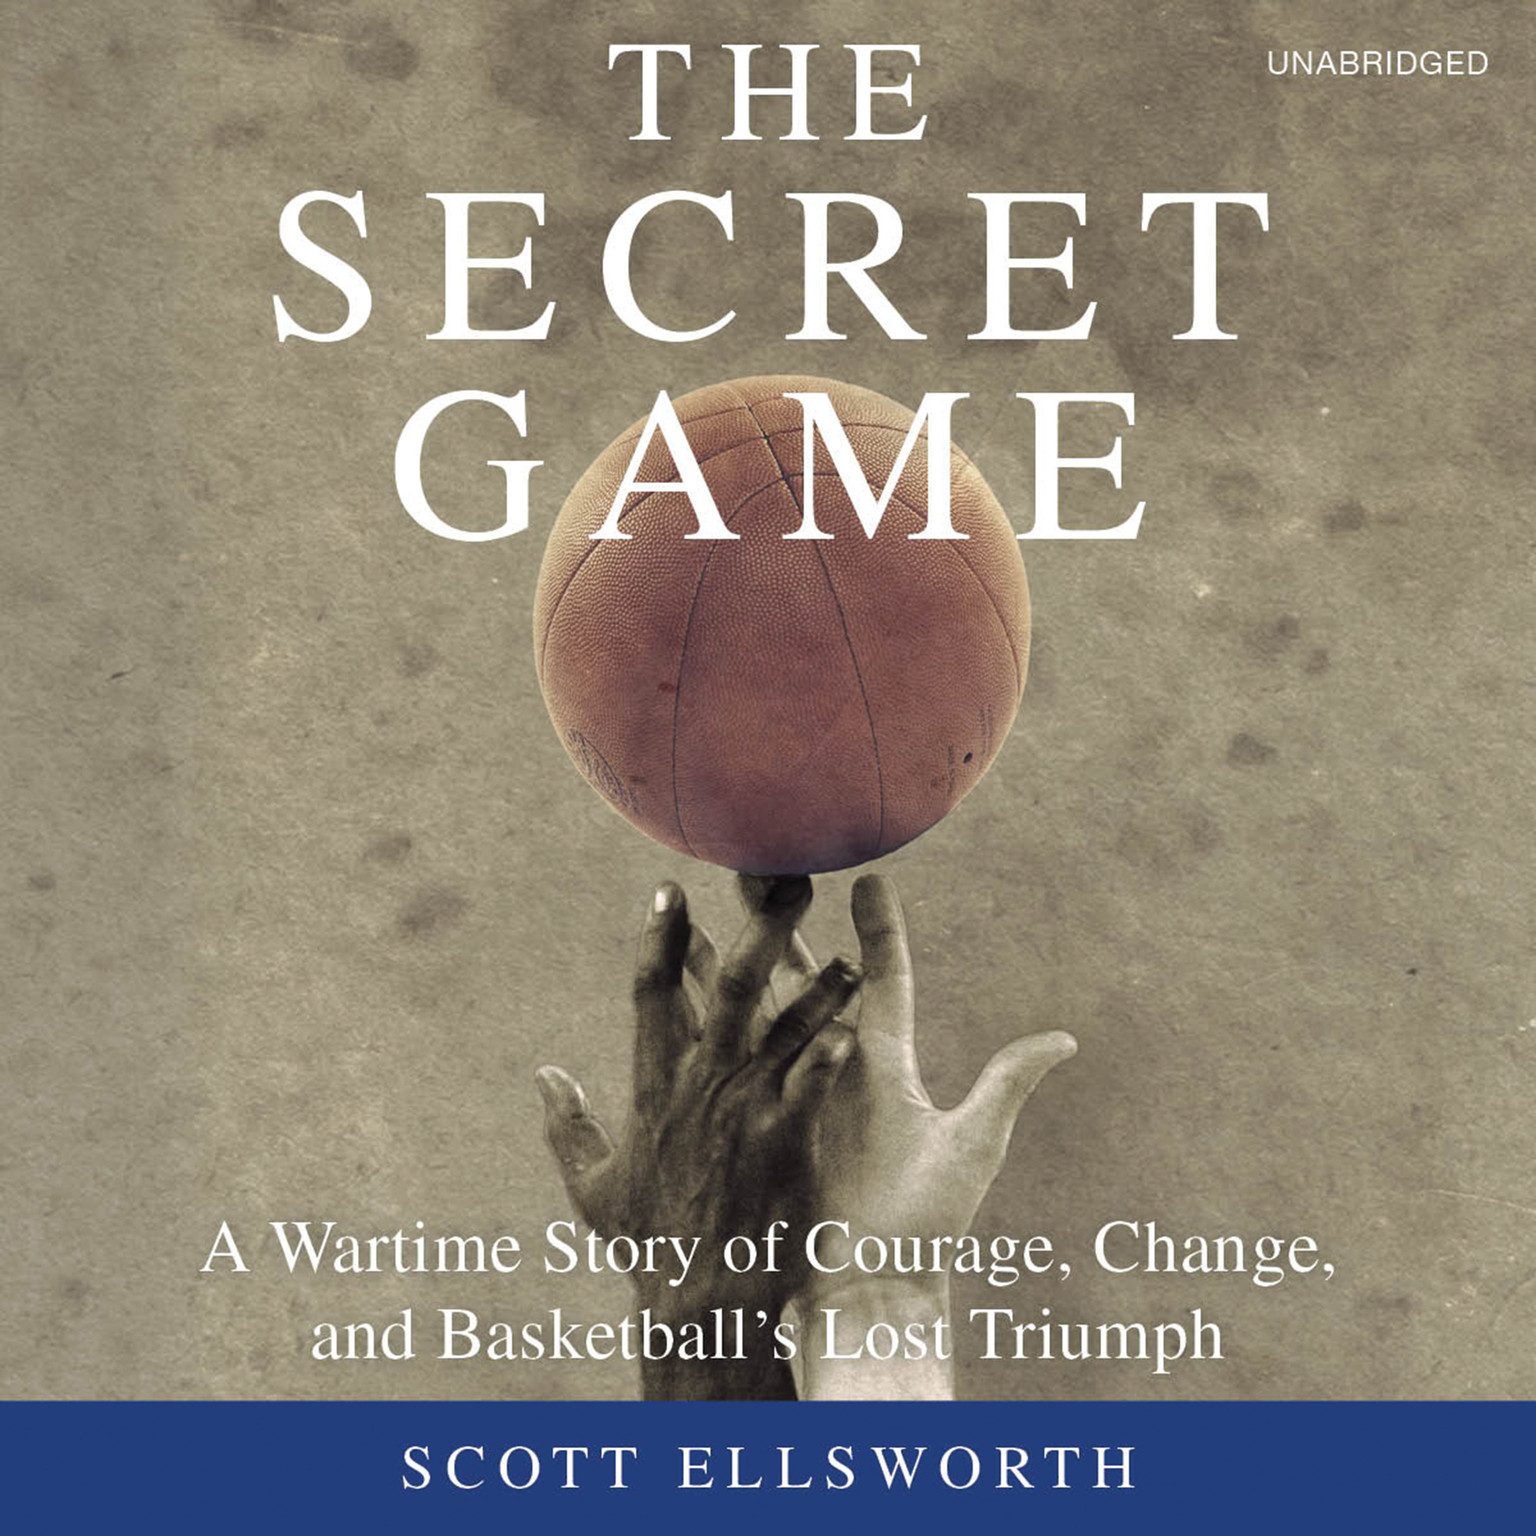 Printable The Secret Game: A Wartime Story of Courage, Change, and Basketball's Lost Triumph Audiobook Cover Art